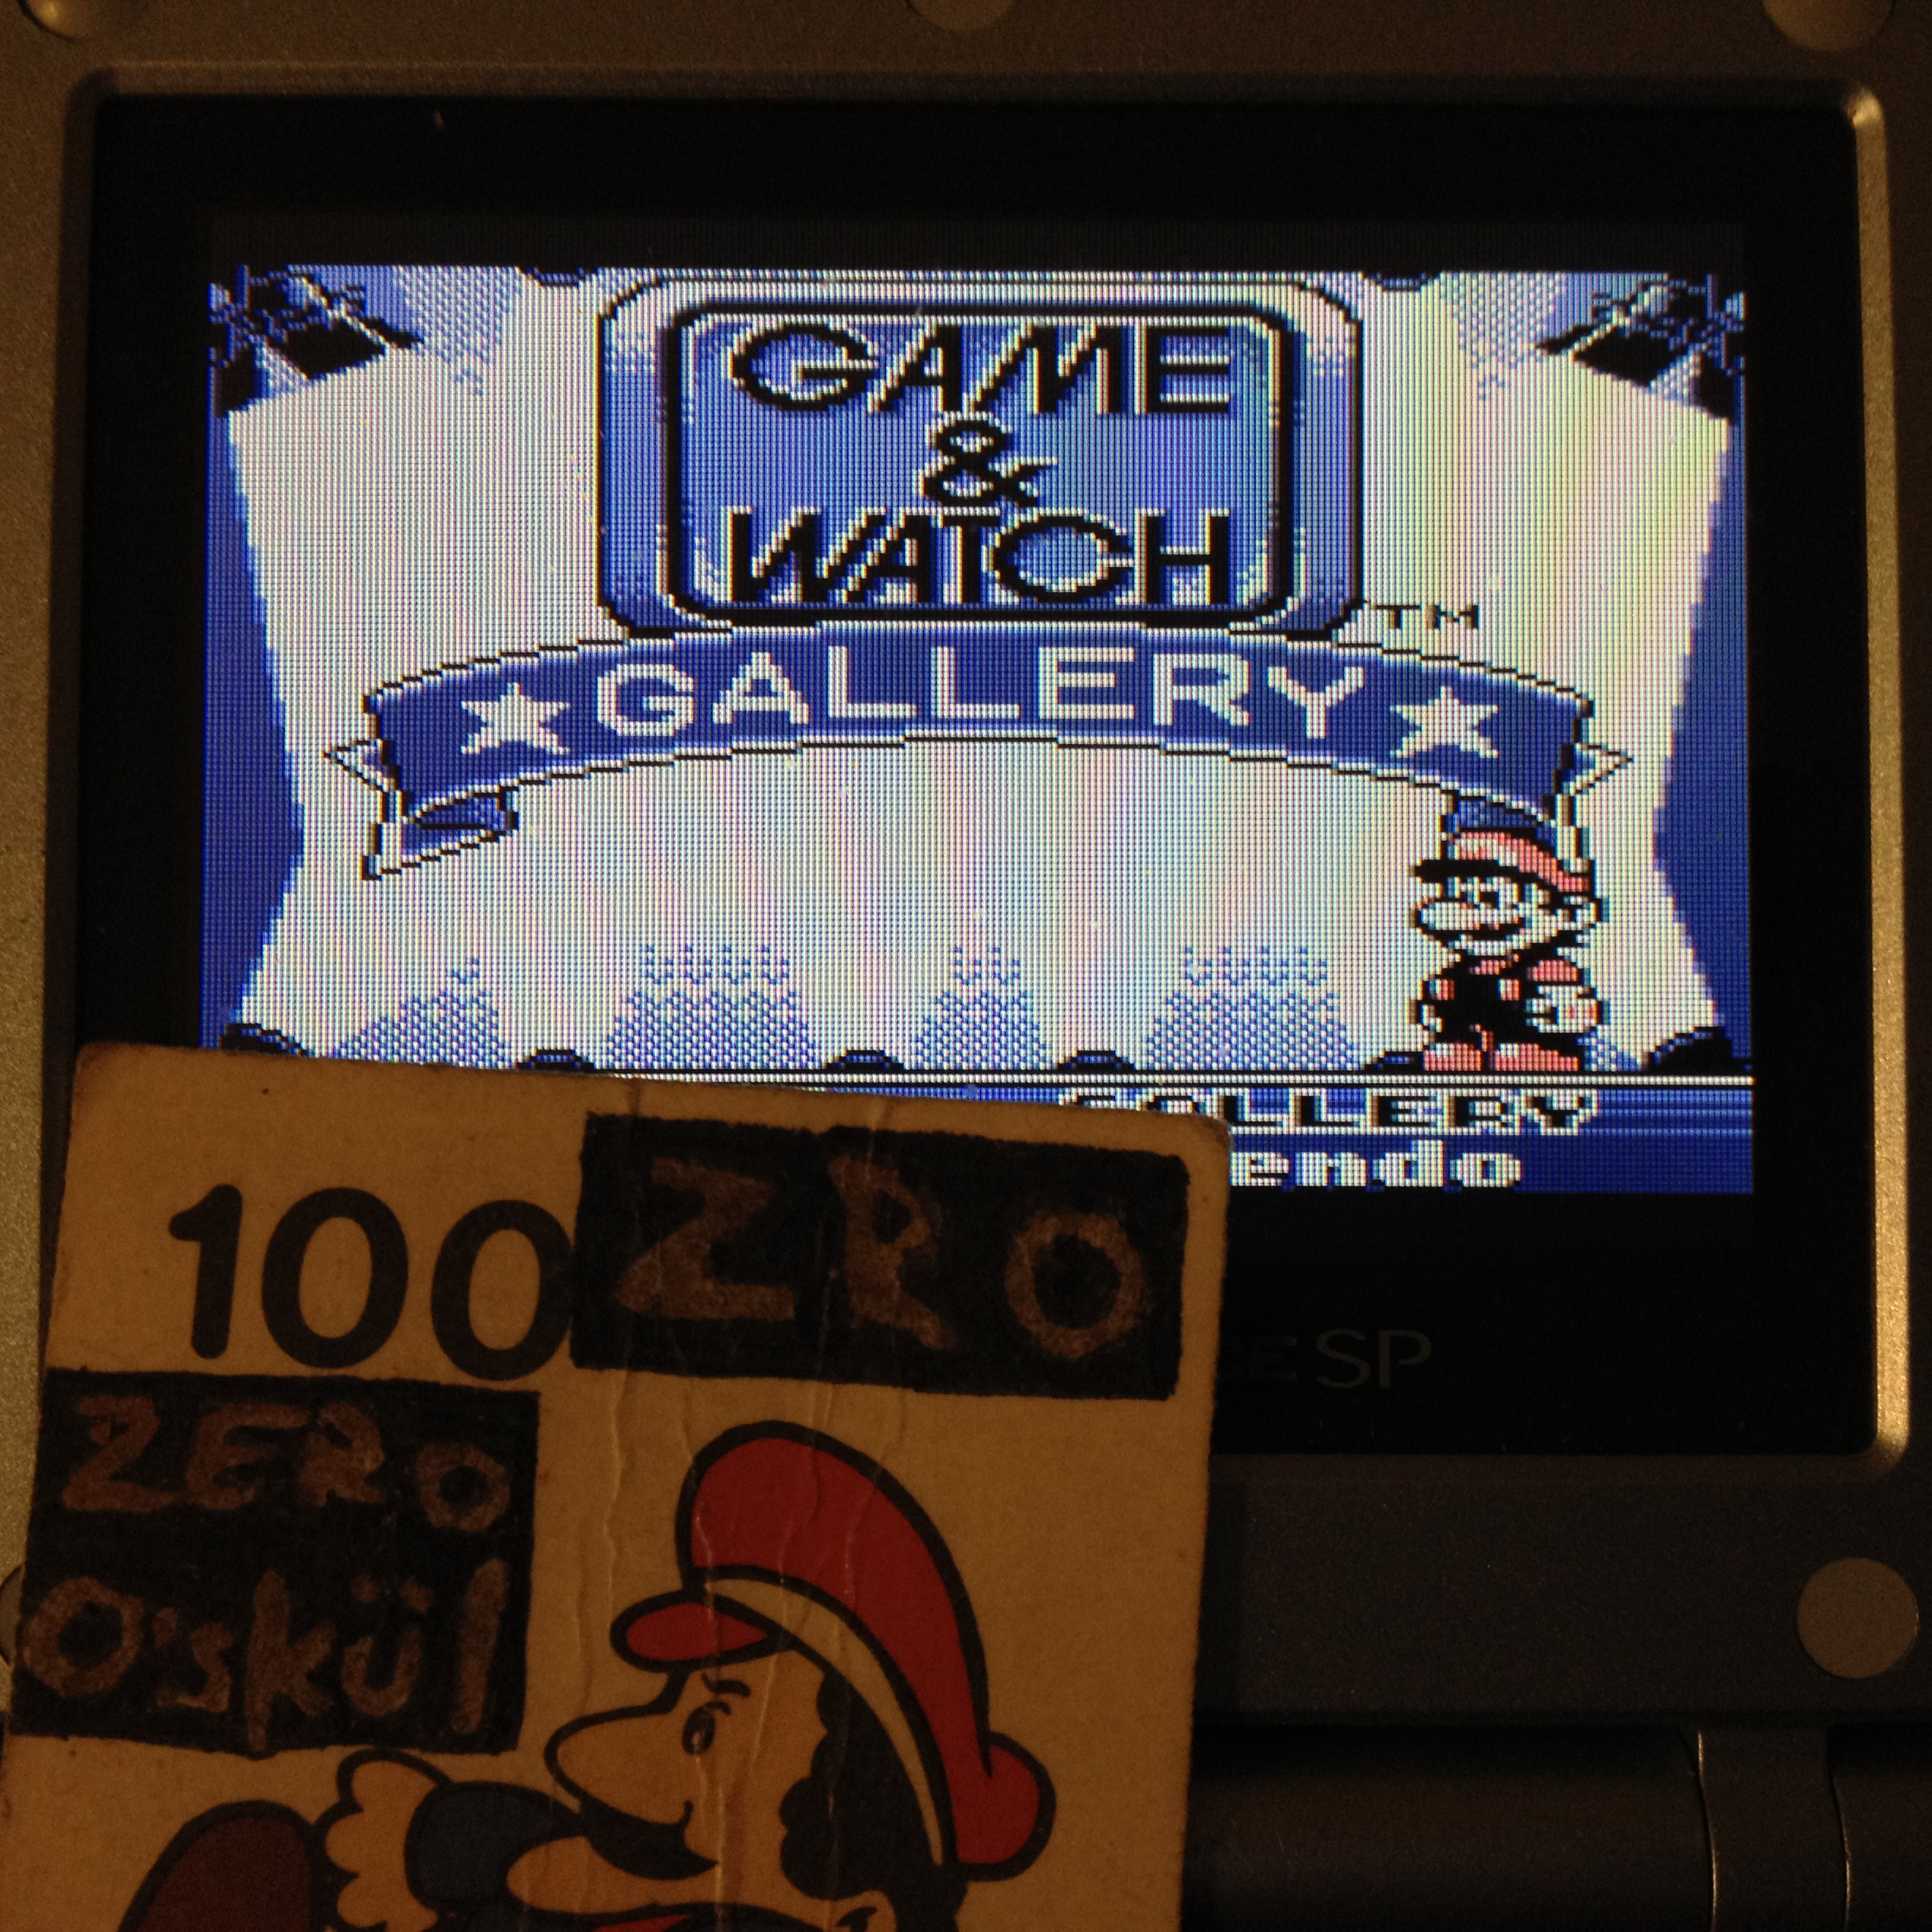 Game & Watch Gallery: Octopus [Modern: Hard] 971 points